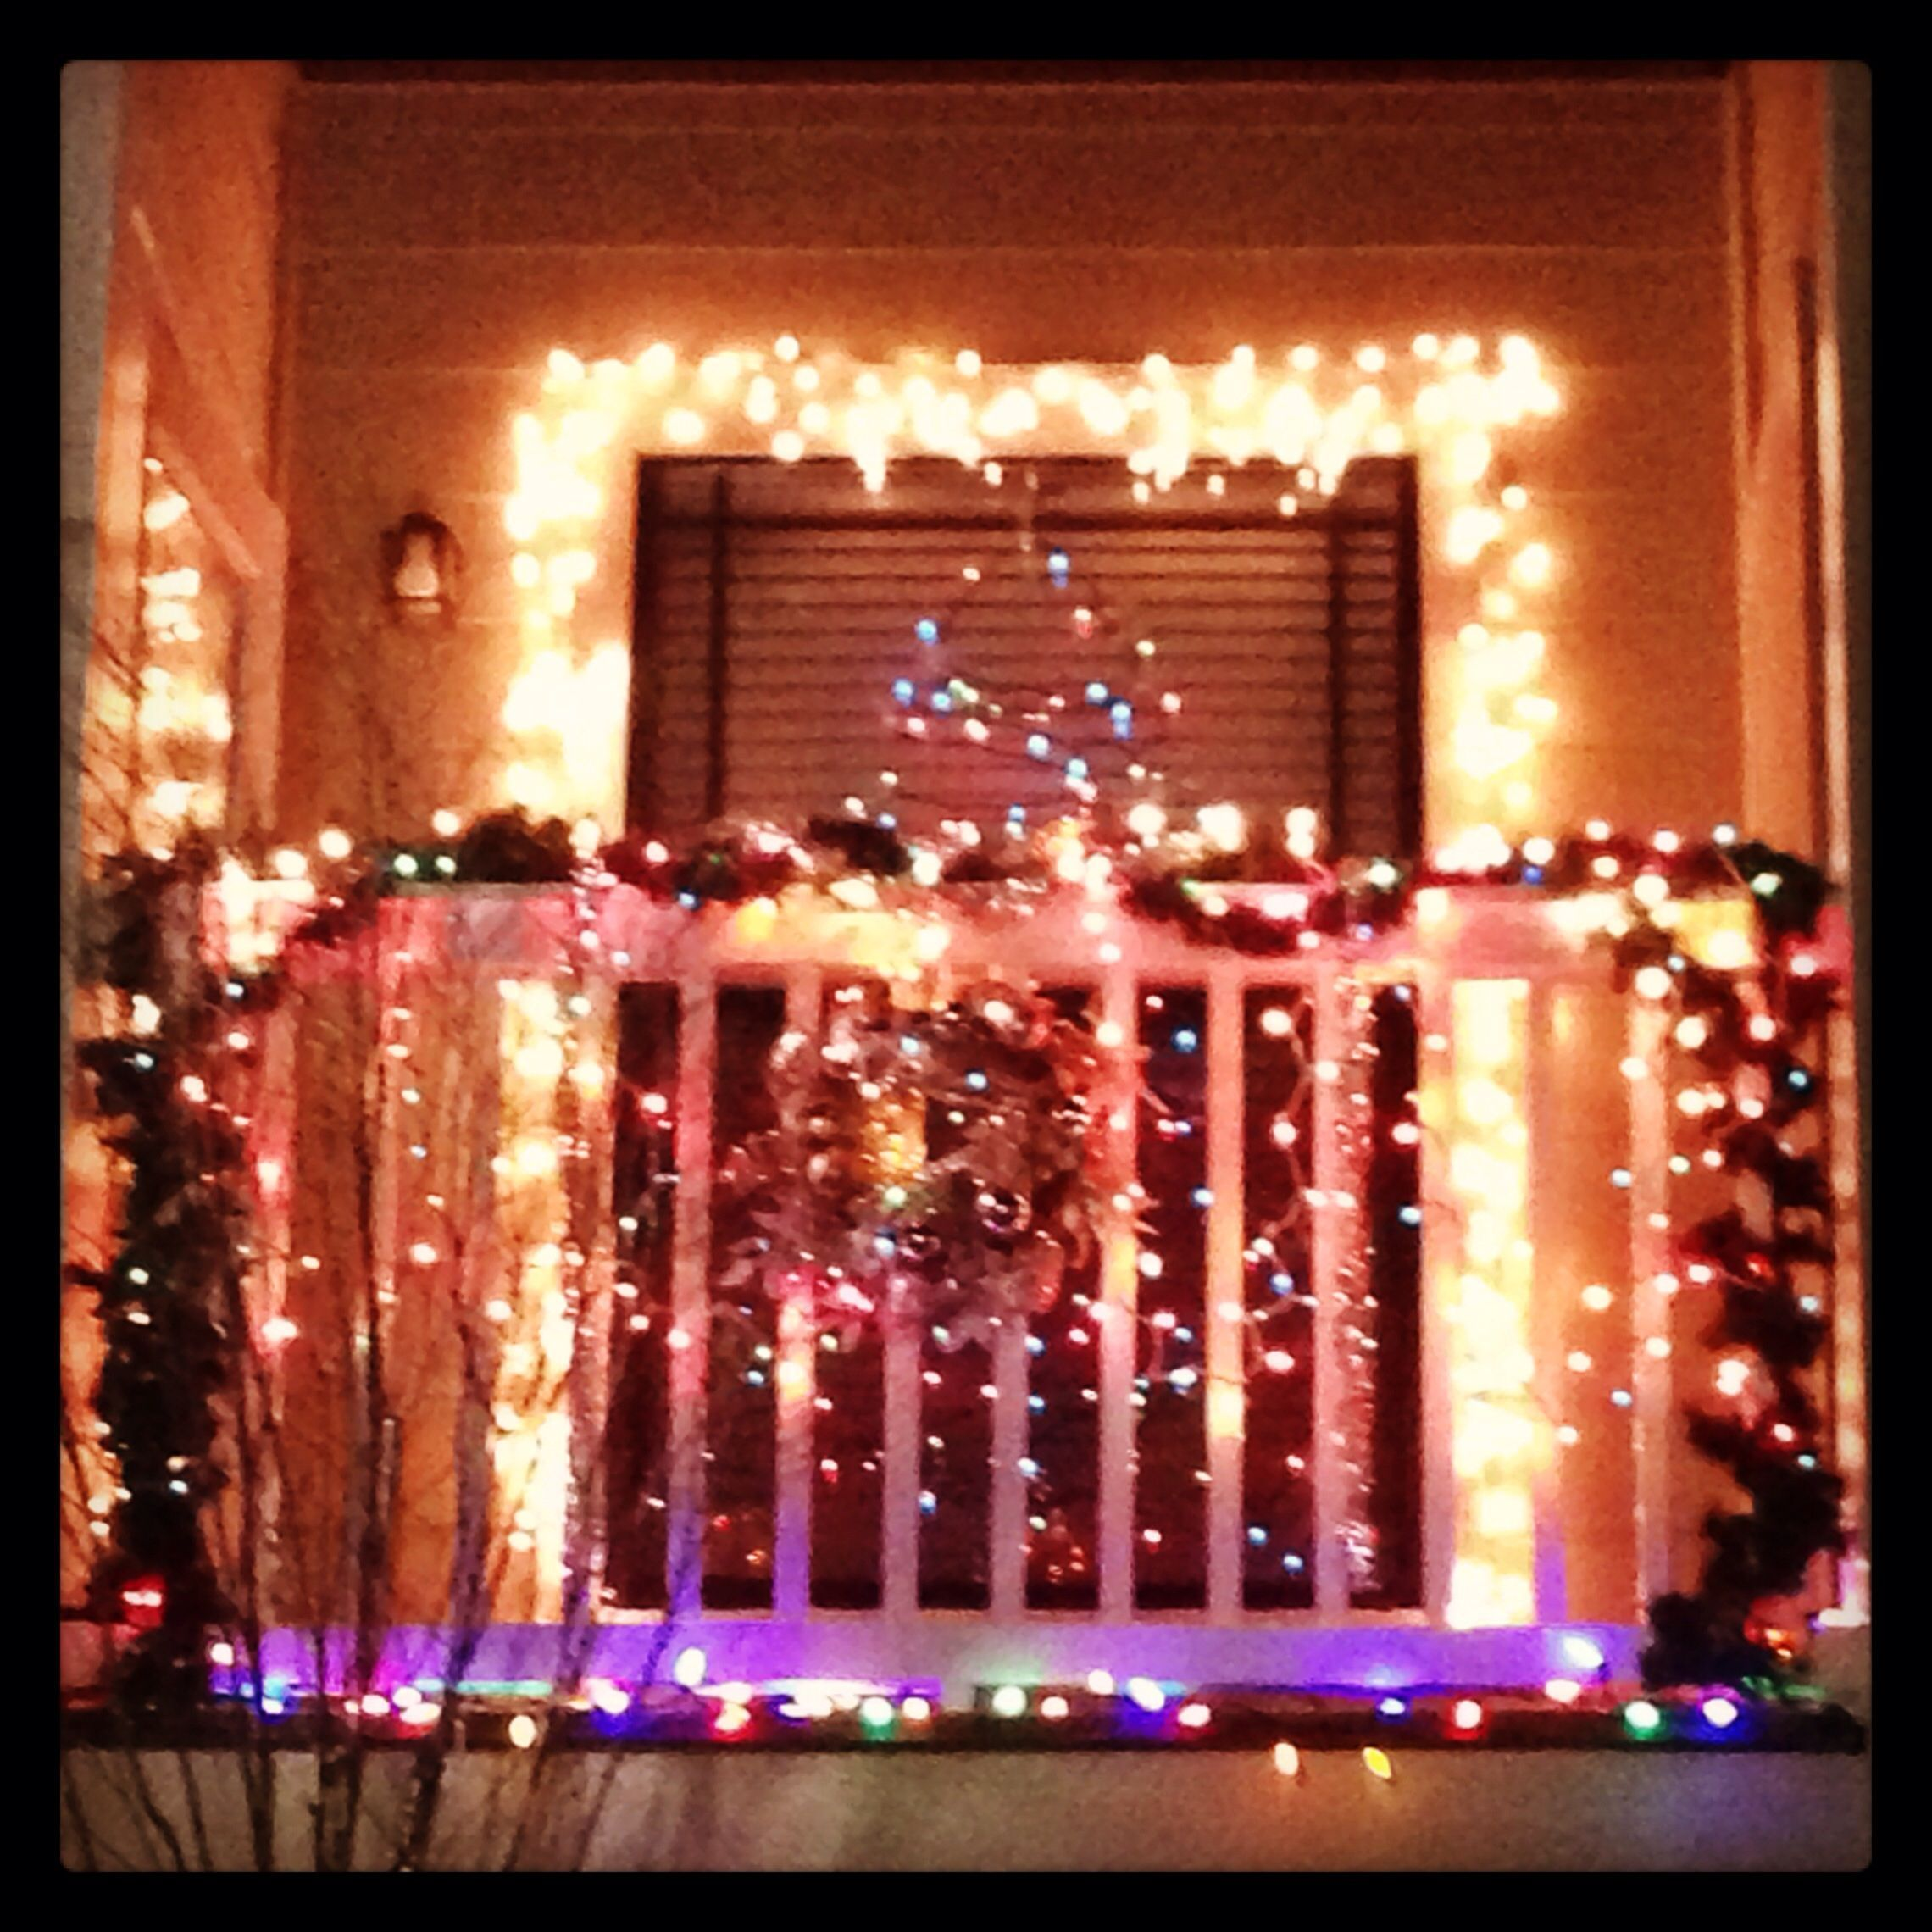 christmas balcony in 2020 christmas decorations apartment christmas apartment christmas on christmas balcony decorations apartment patio id=29115